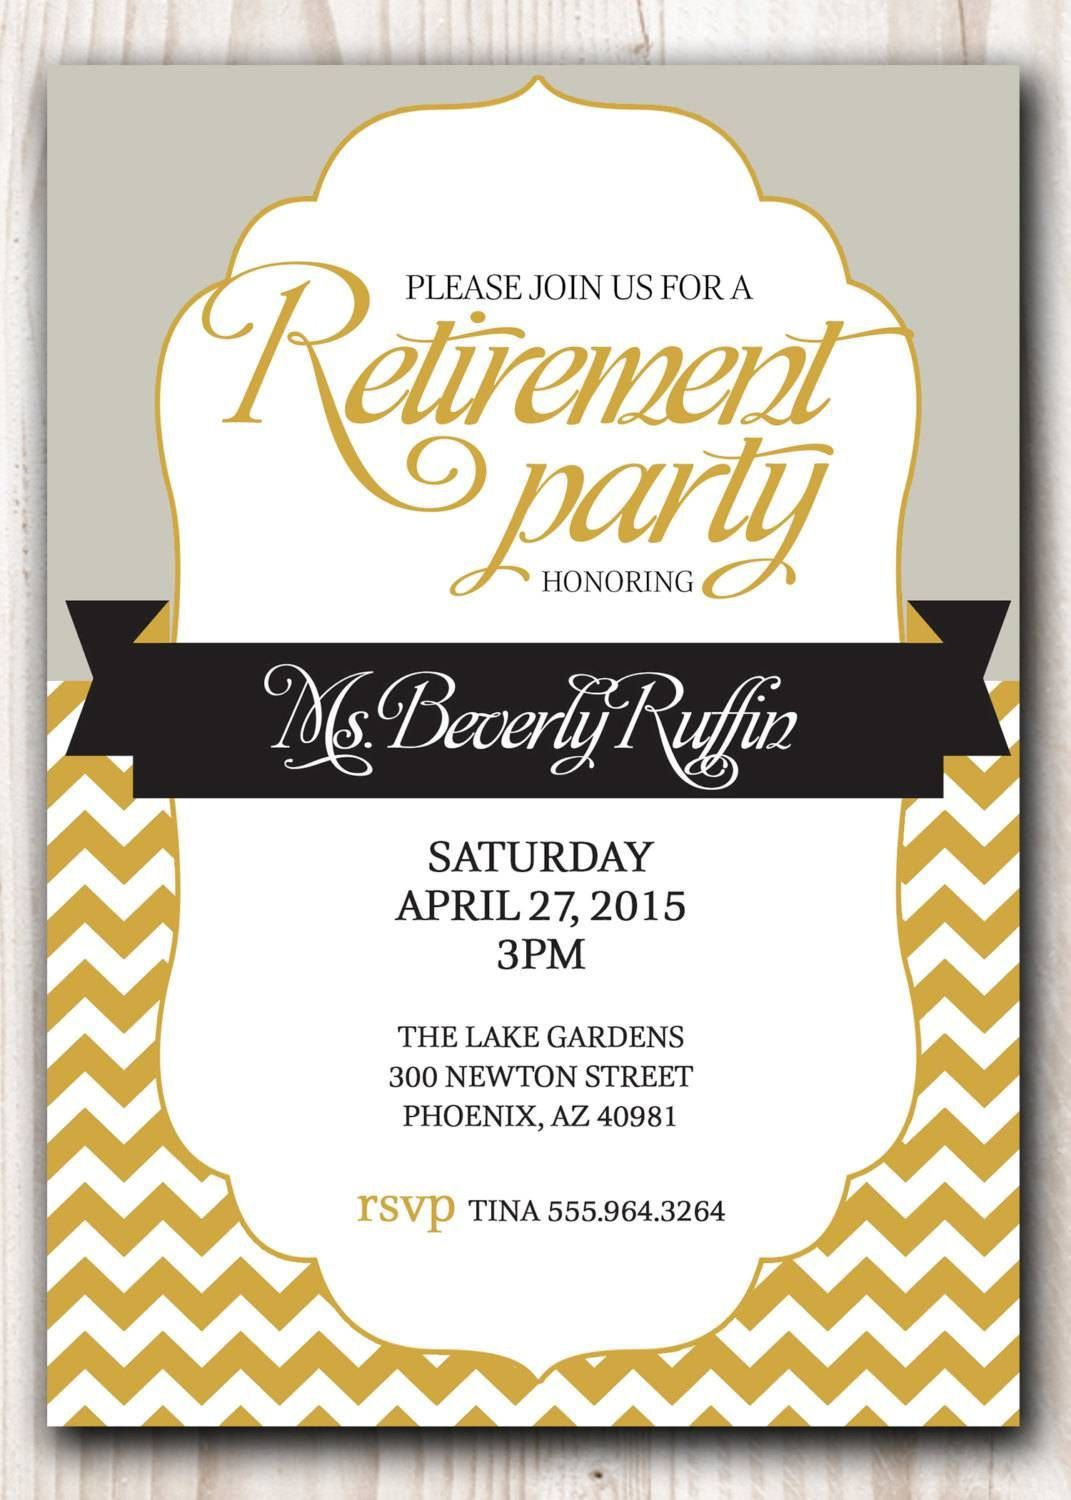 007 Awesome Retirement Invitation Template Free Highest Quality  Party Word DownloadFull